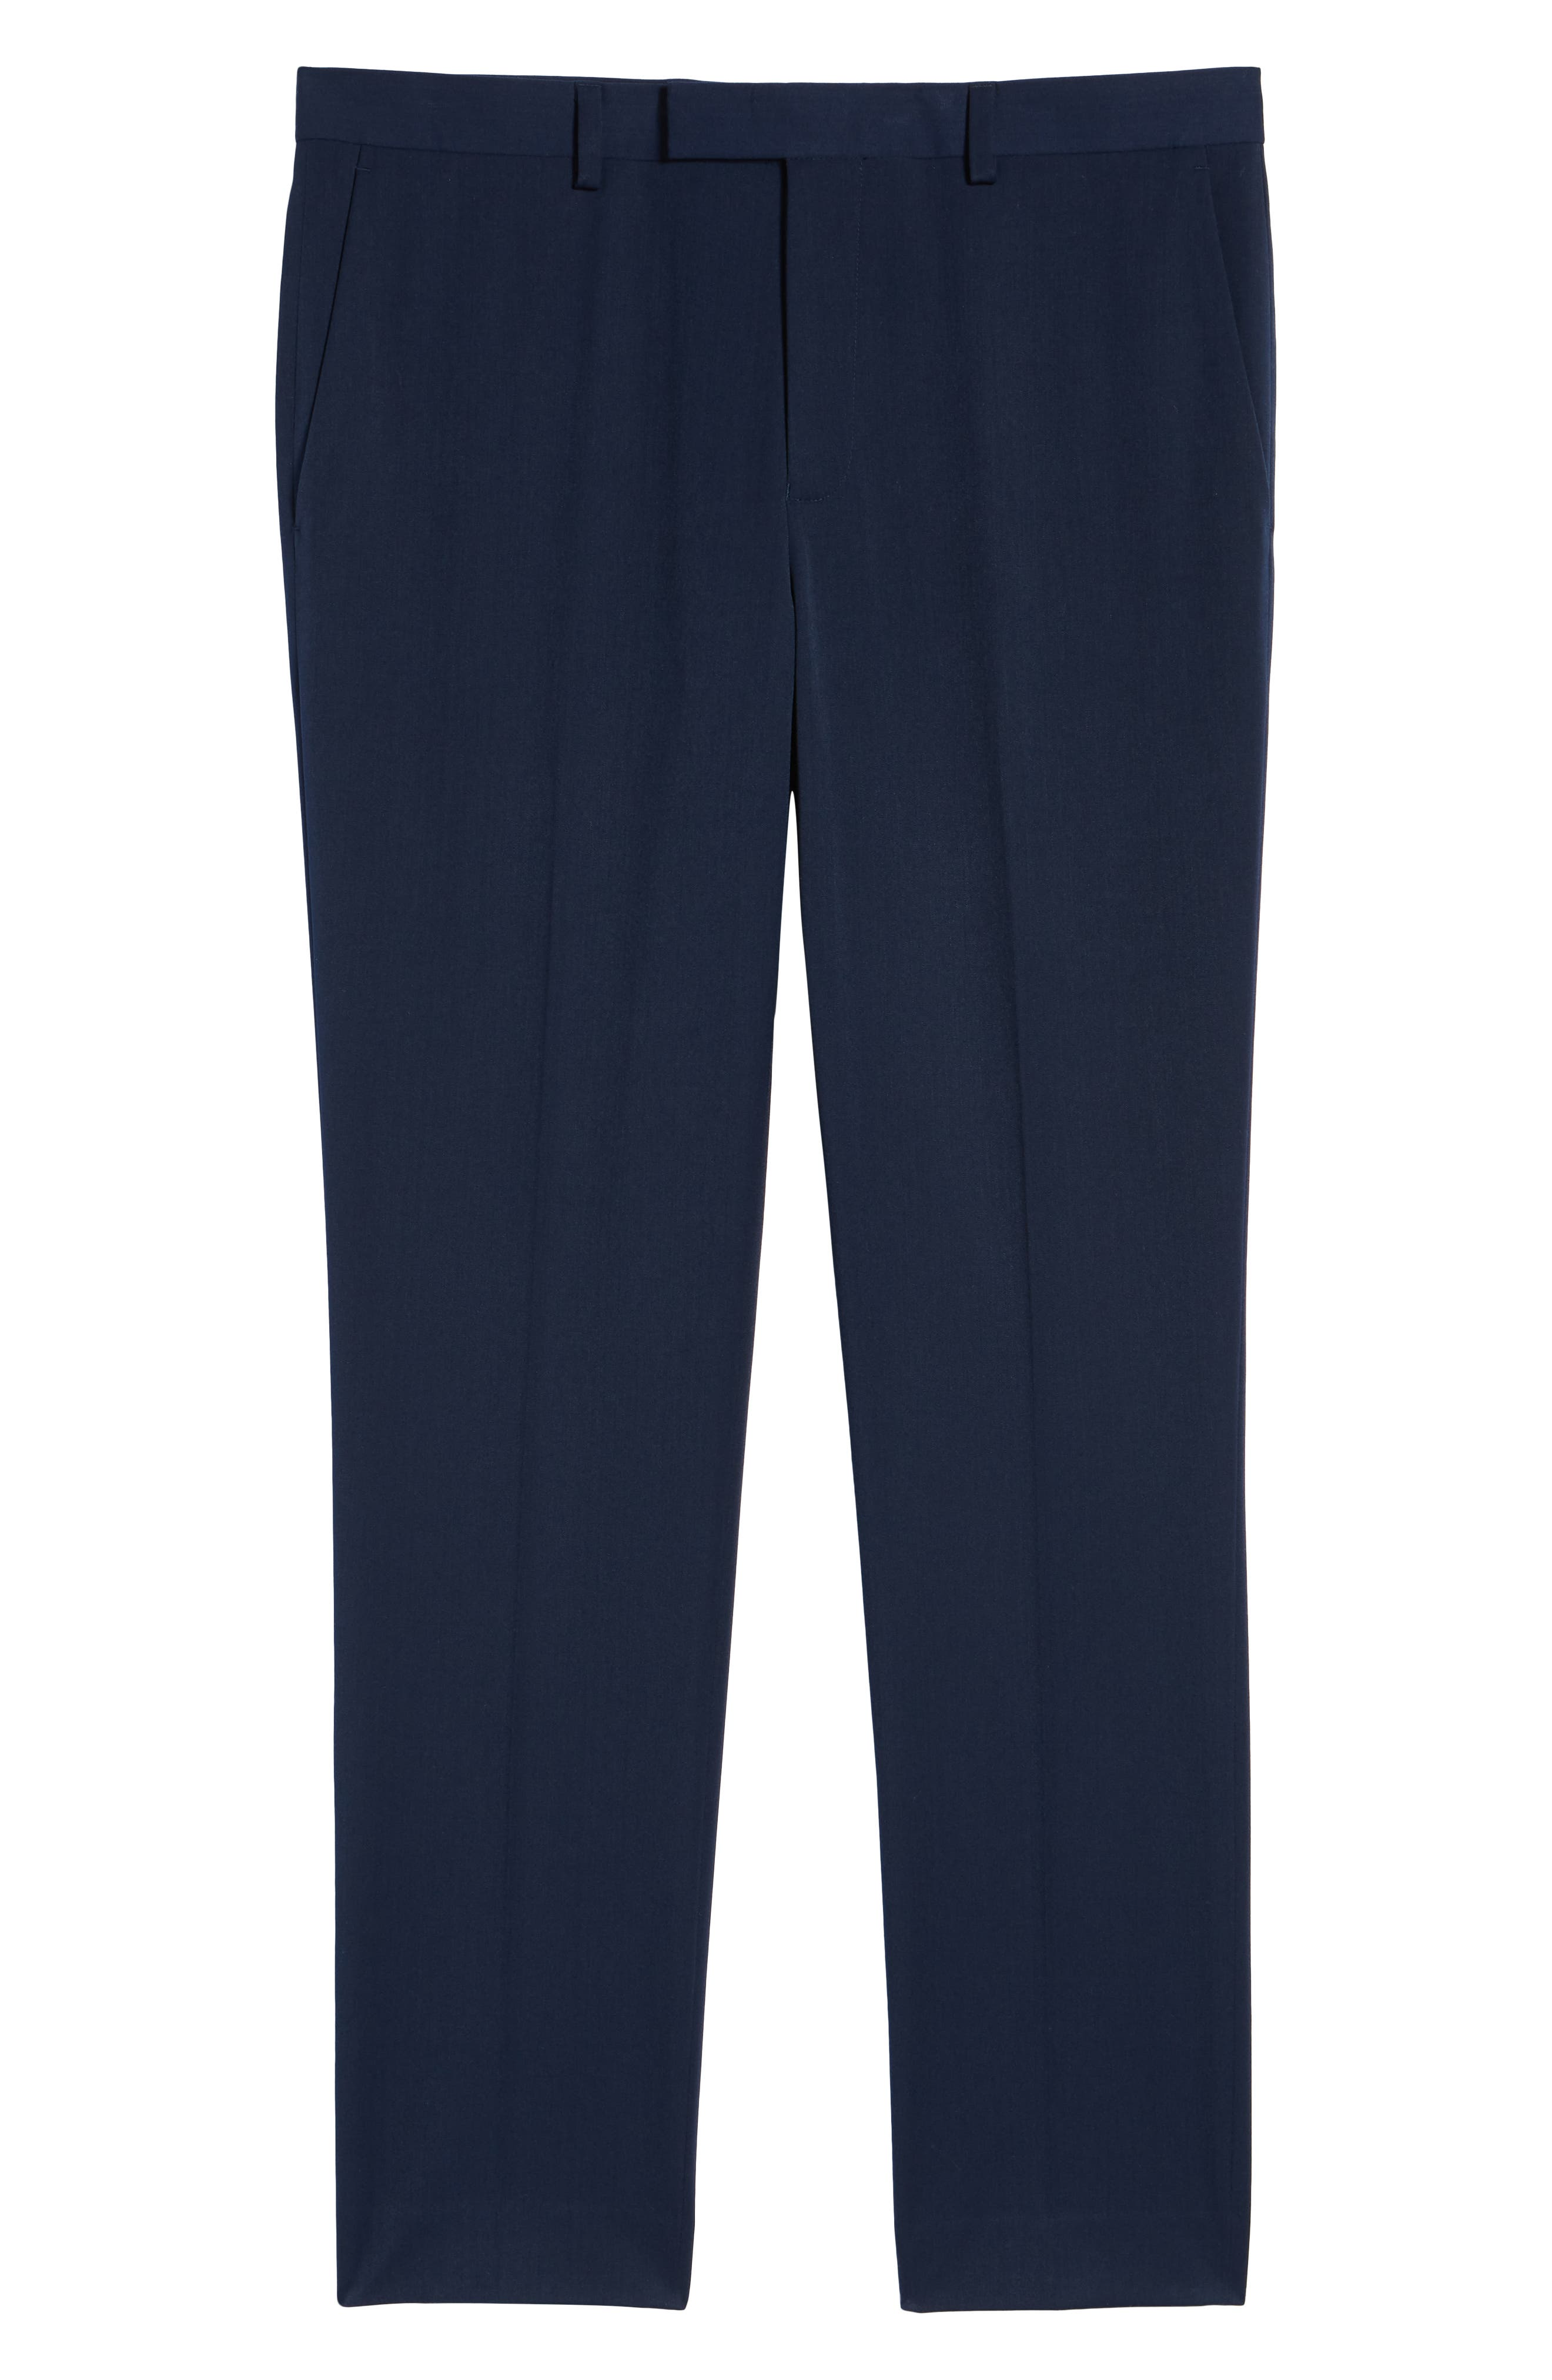 Muscle Fit Trousers,                             Alternate thumbnail 6, color,                             NAVY BLUE